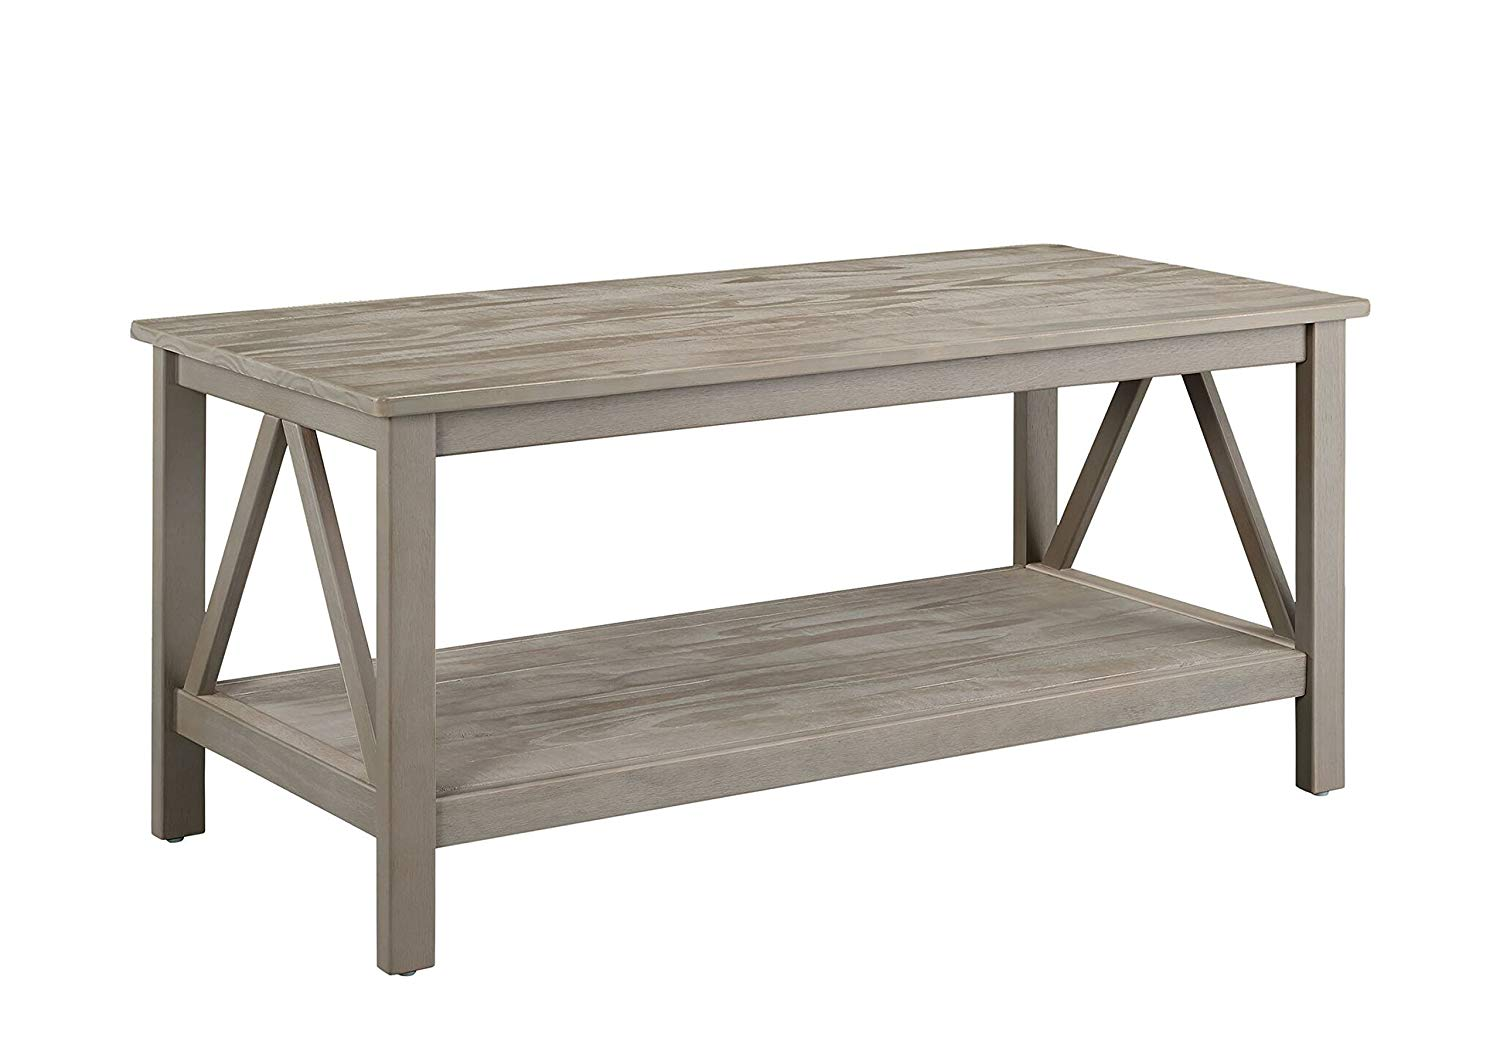 linon titian industrial gray coffee table grey wood accent kitchen dining pottery barn night tables outdoor seat covers patio conversation sets clearance trestle old door ideas